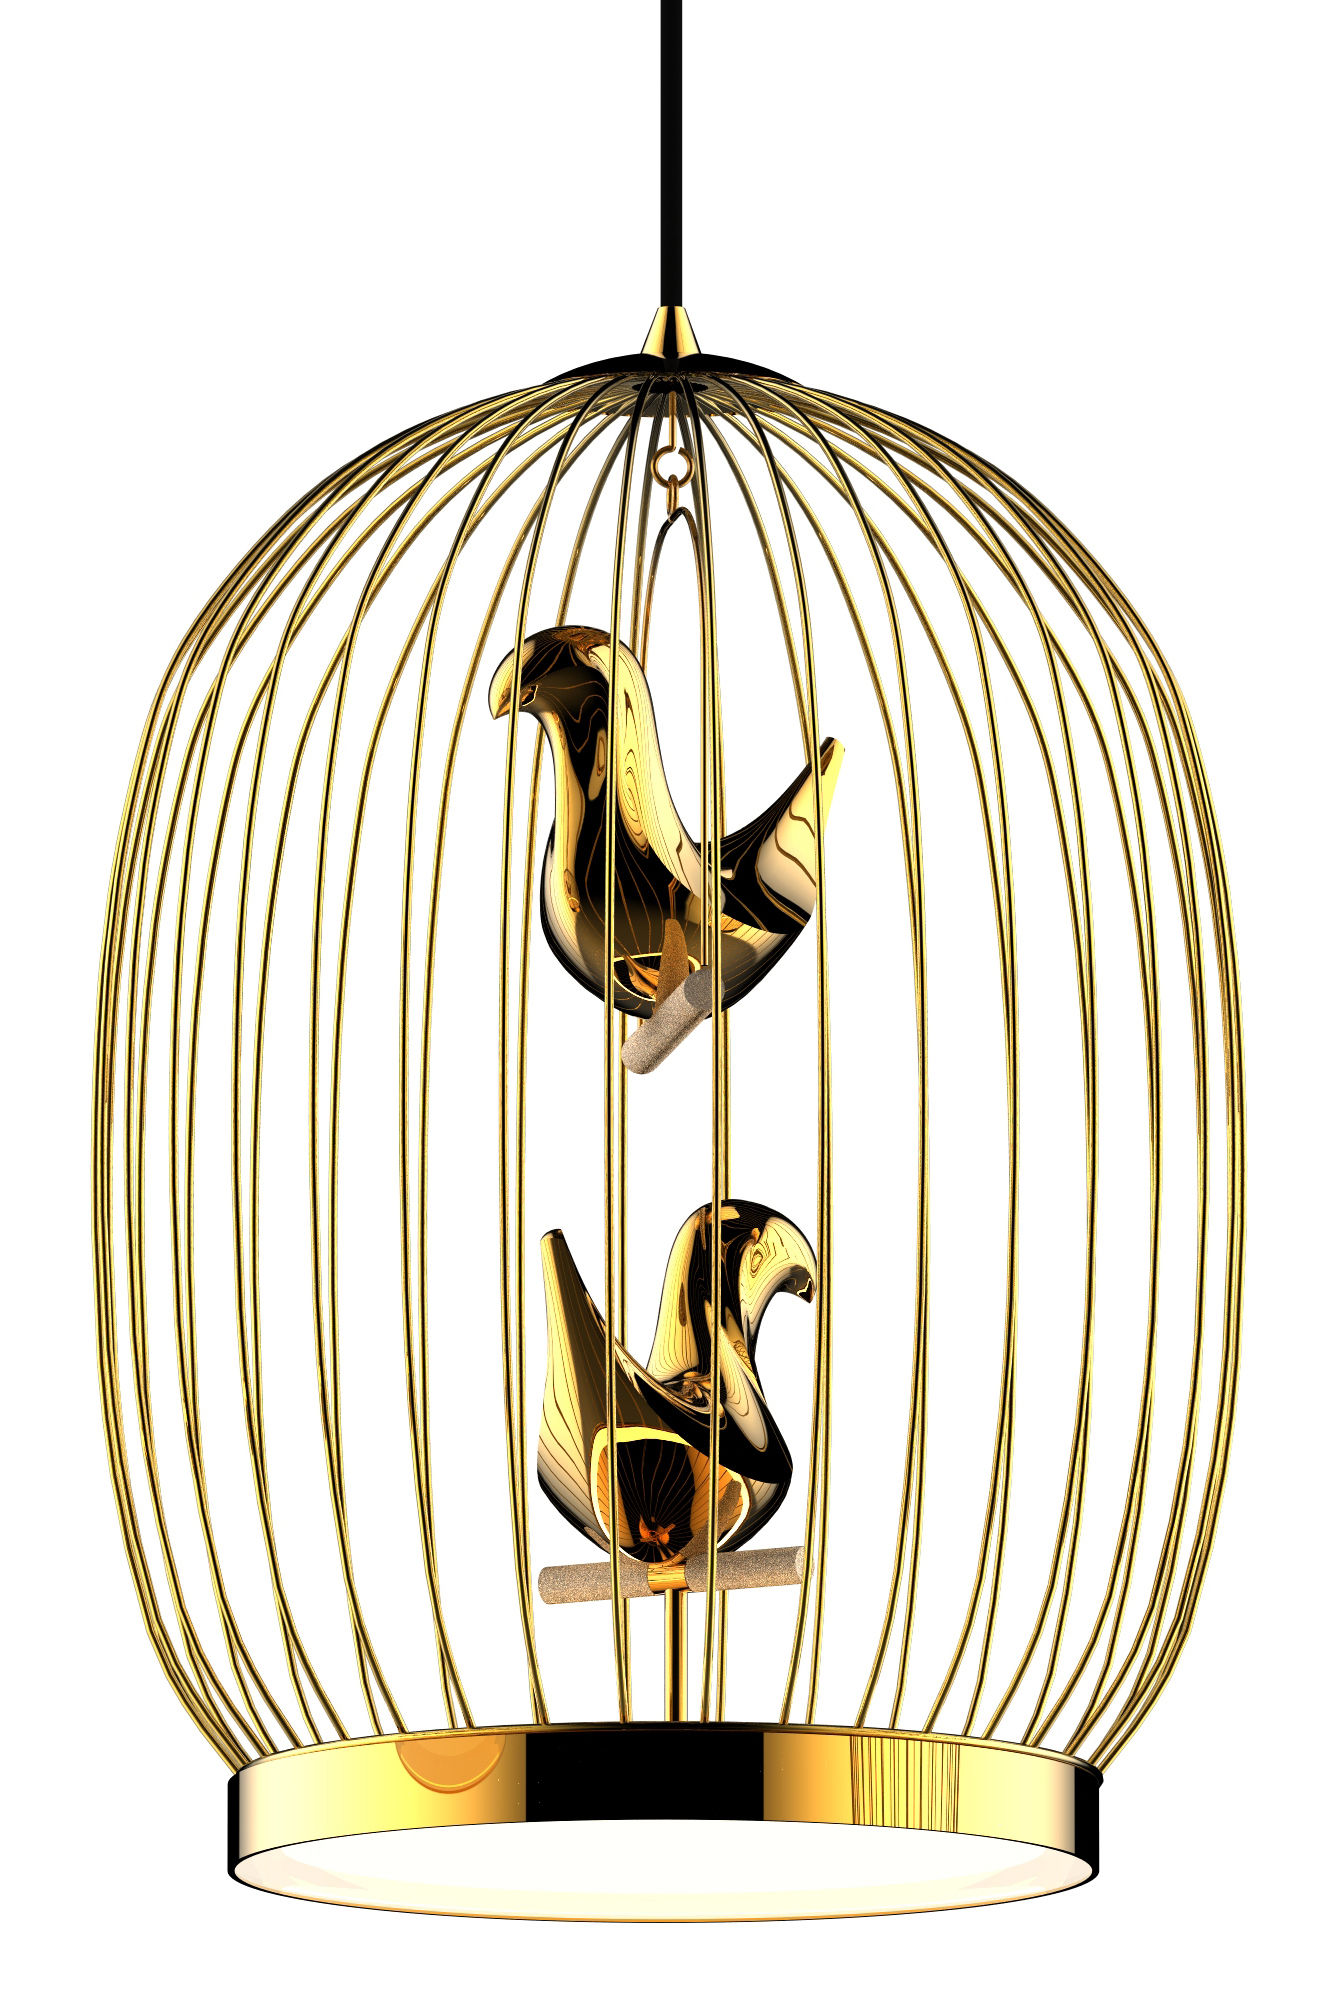 Lighting - Pendant Lighting - Twee T. Large Pendant by Casamania - Gold / Pendant -  Céramique plaquée or, Gold-plated metal